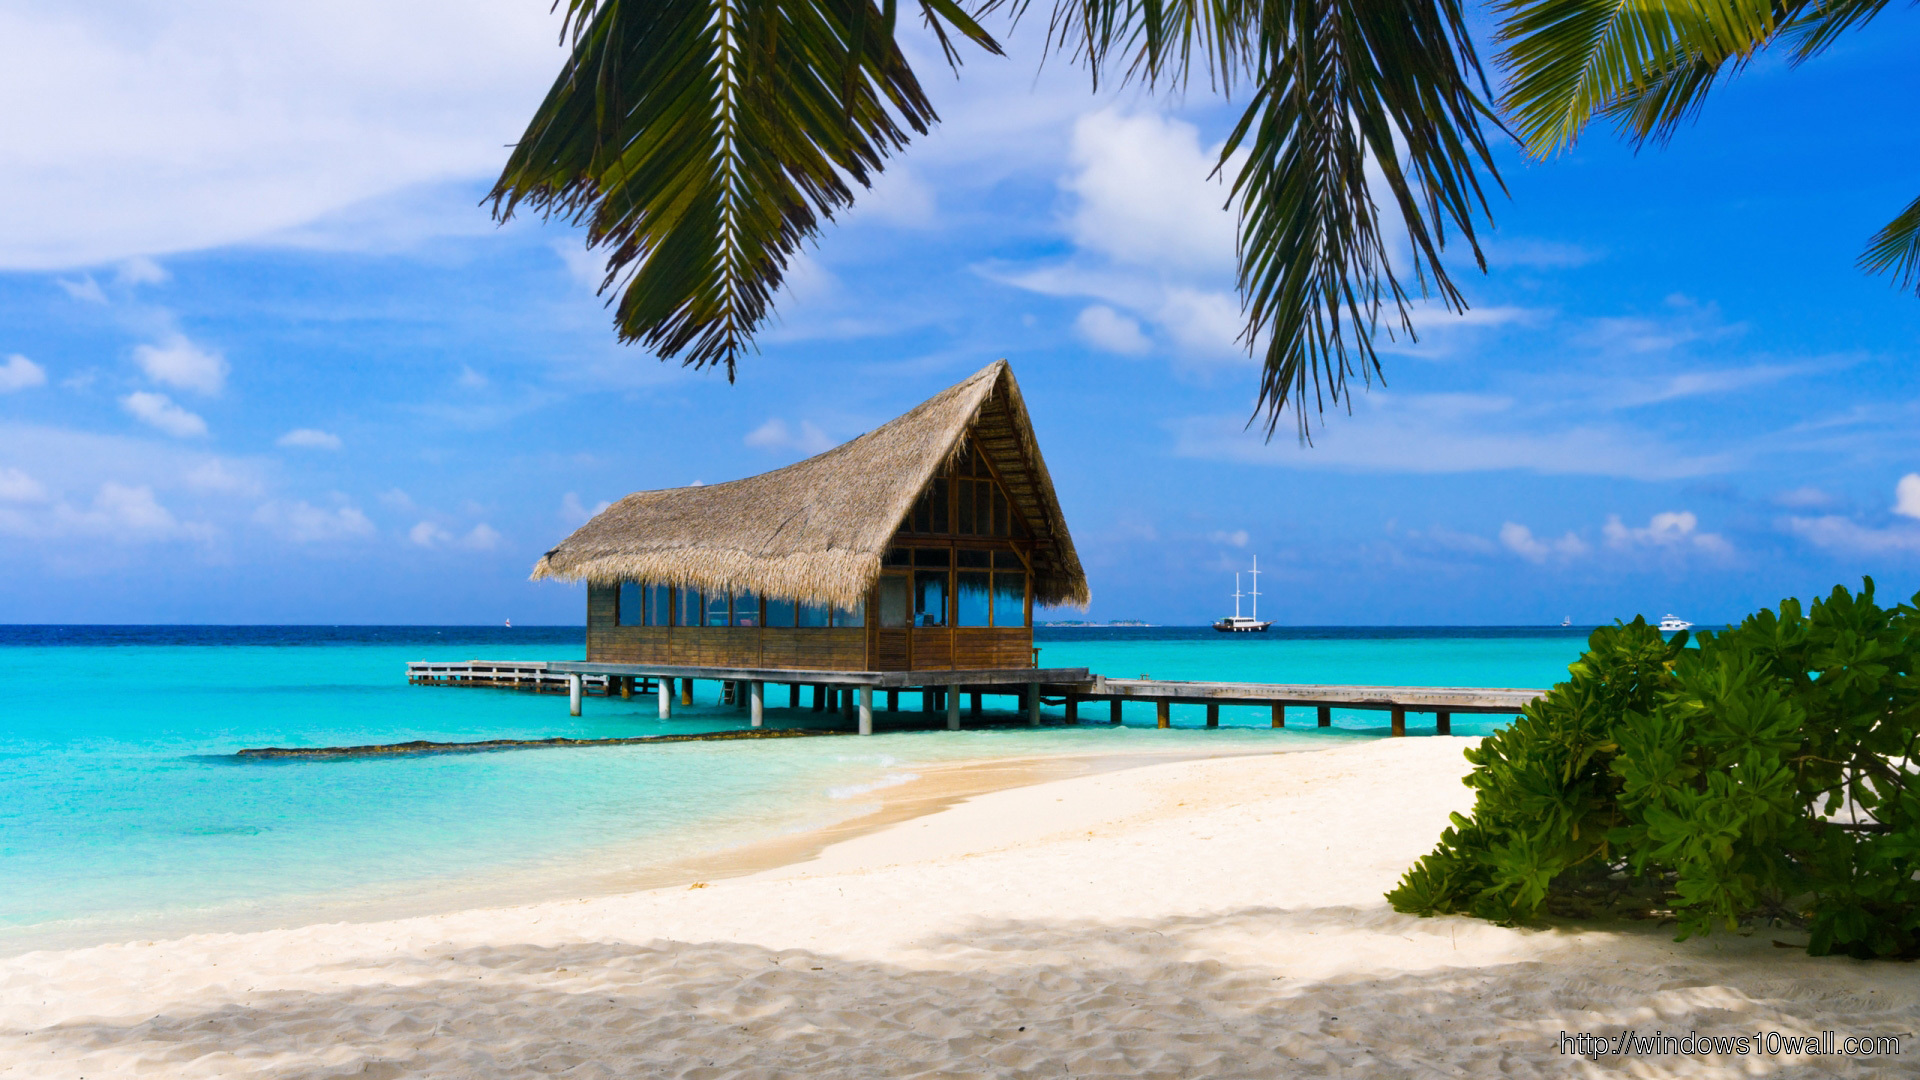 10 Best Tropical Beach Desktop Backgrounds Full Hd 1920: Beach Paradise HD Wallpaper